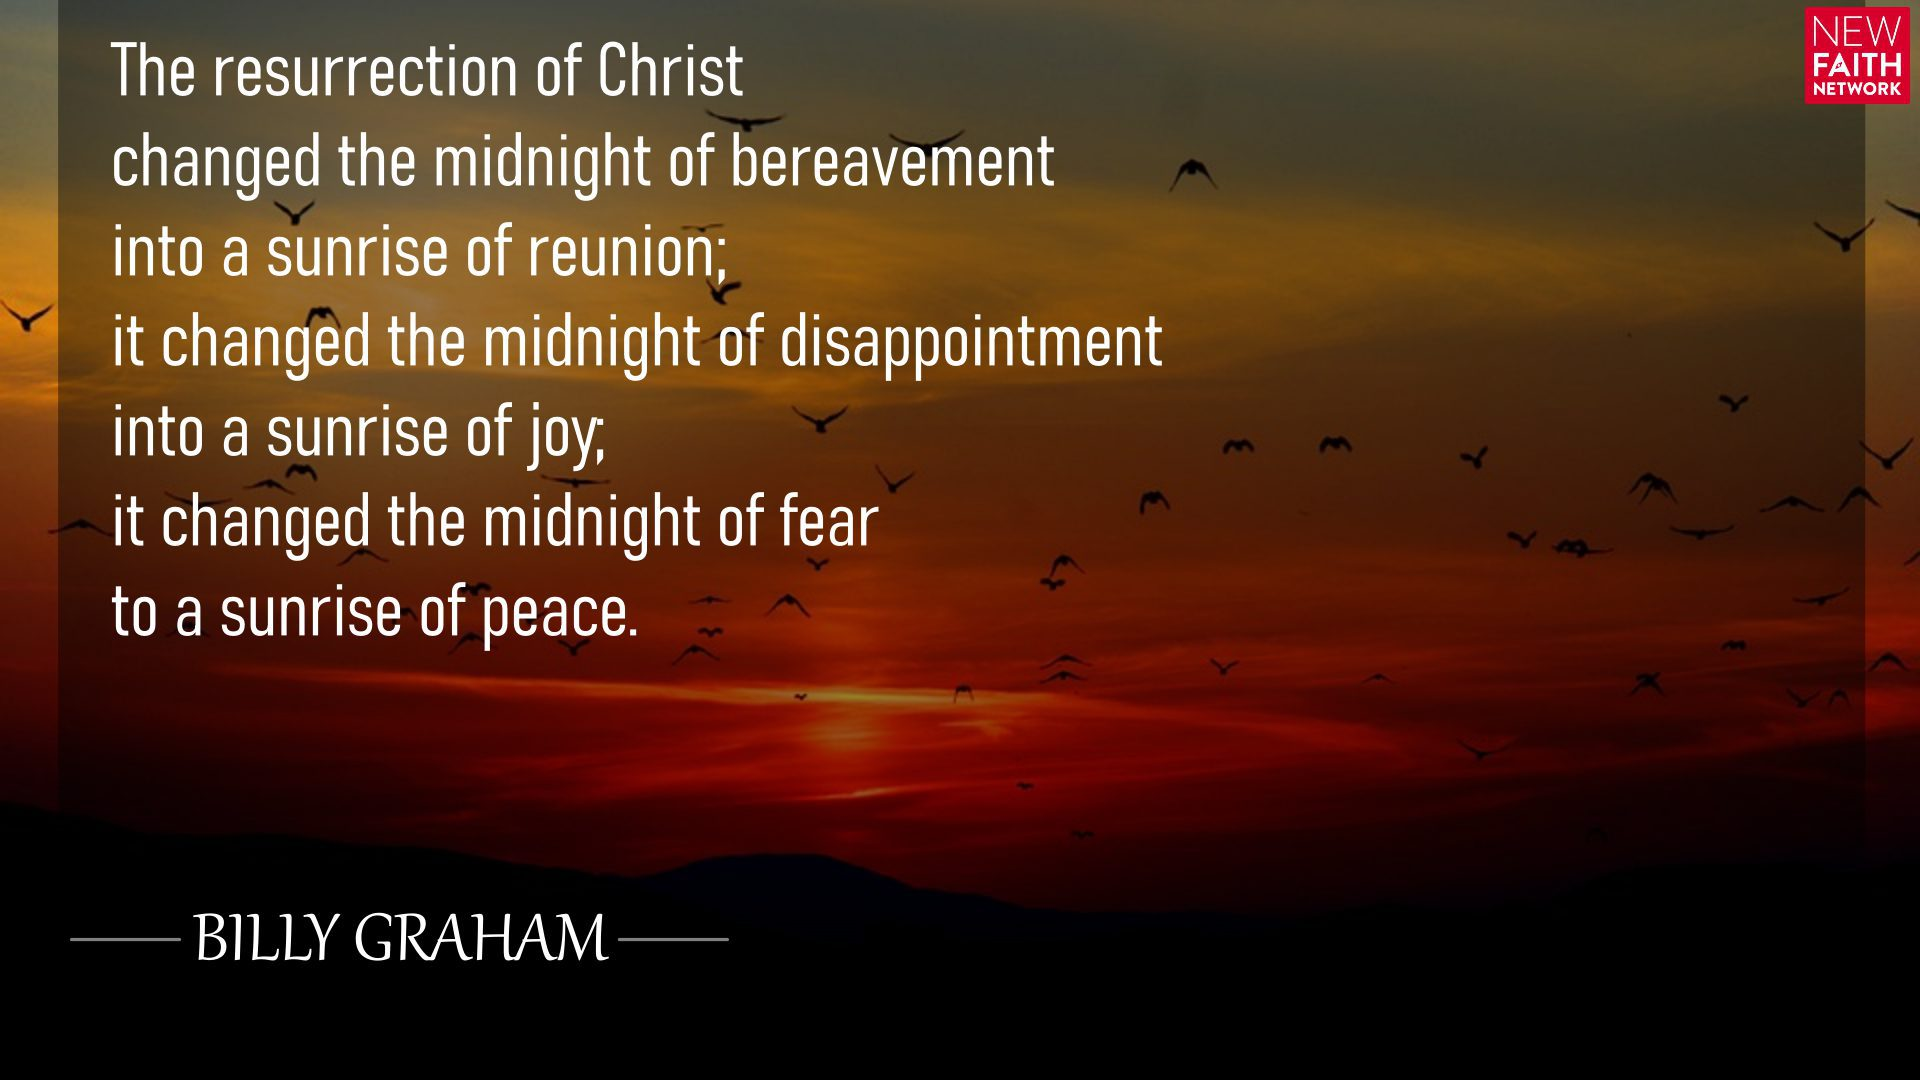 The resurrection of Christ changed the midnight of bereavement into a sunrise of reunion; it changed the midnight of disappointment into a sunrise of joy; it changed the midnight of fear to a sunrise of peace.